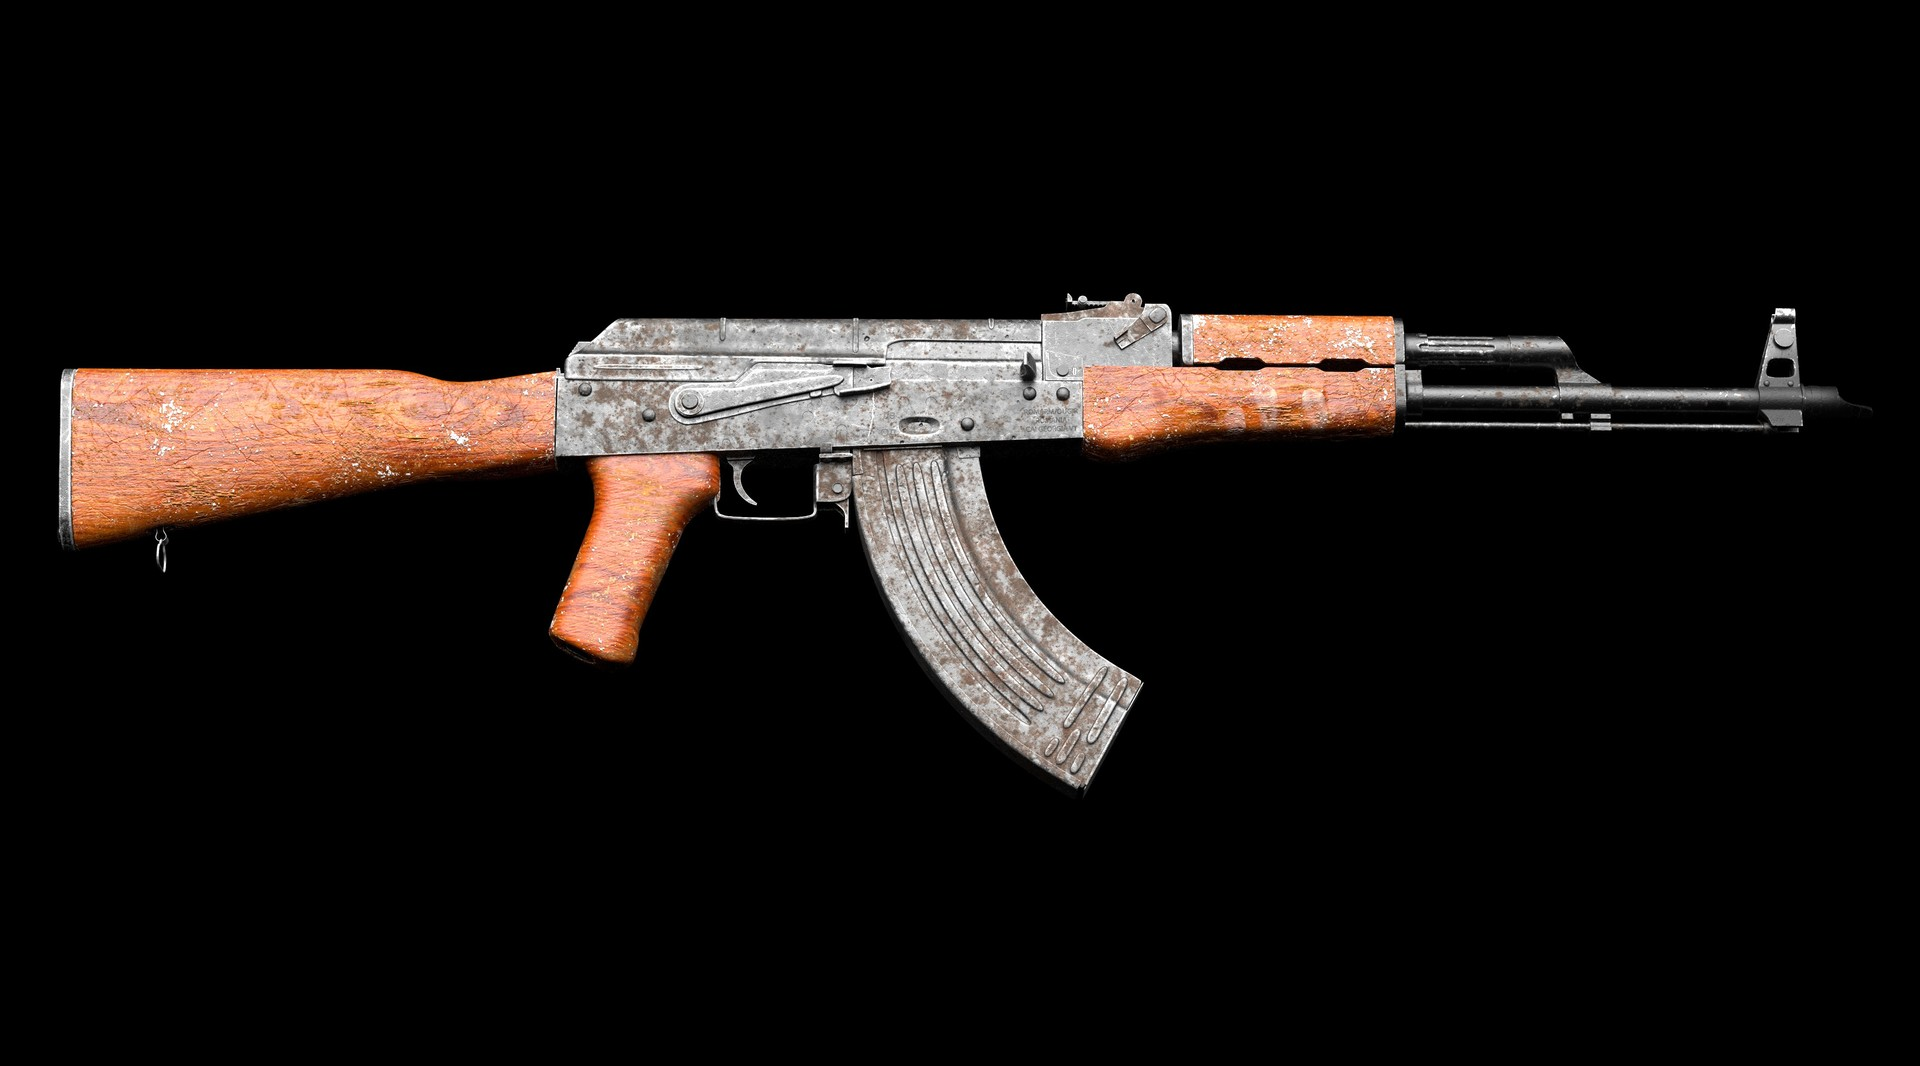 AKM textured in SP